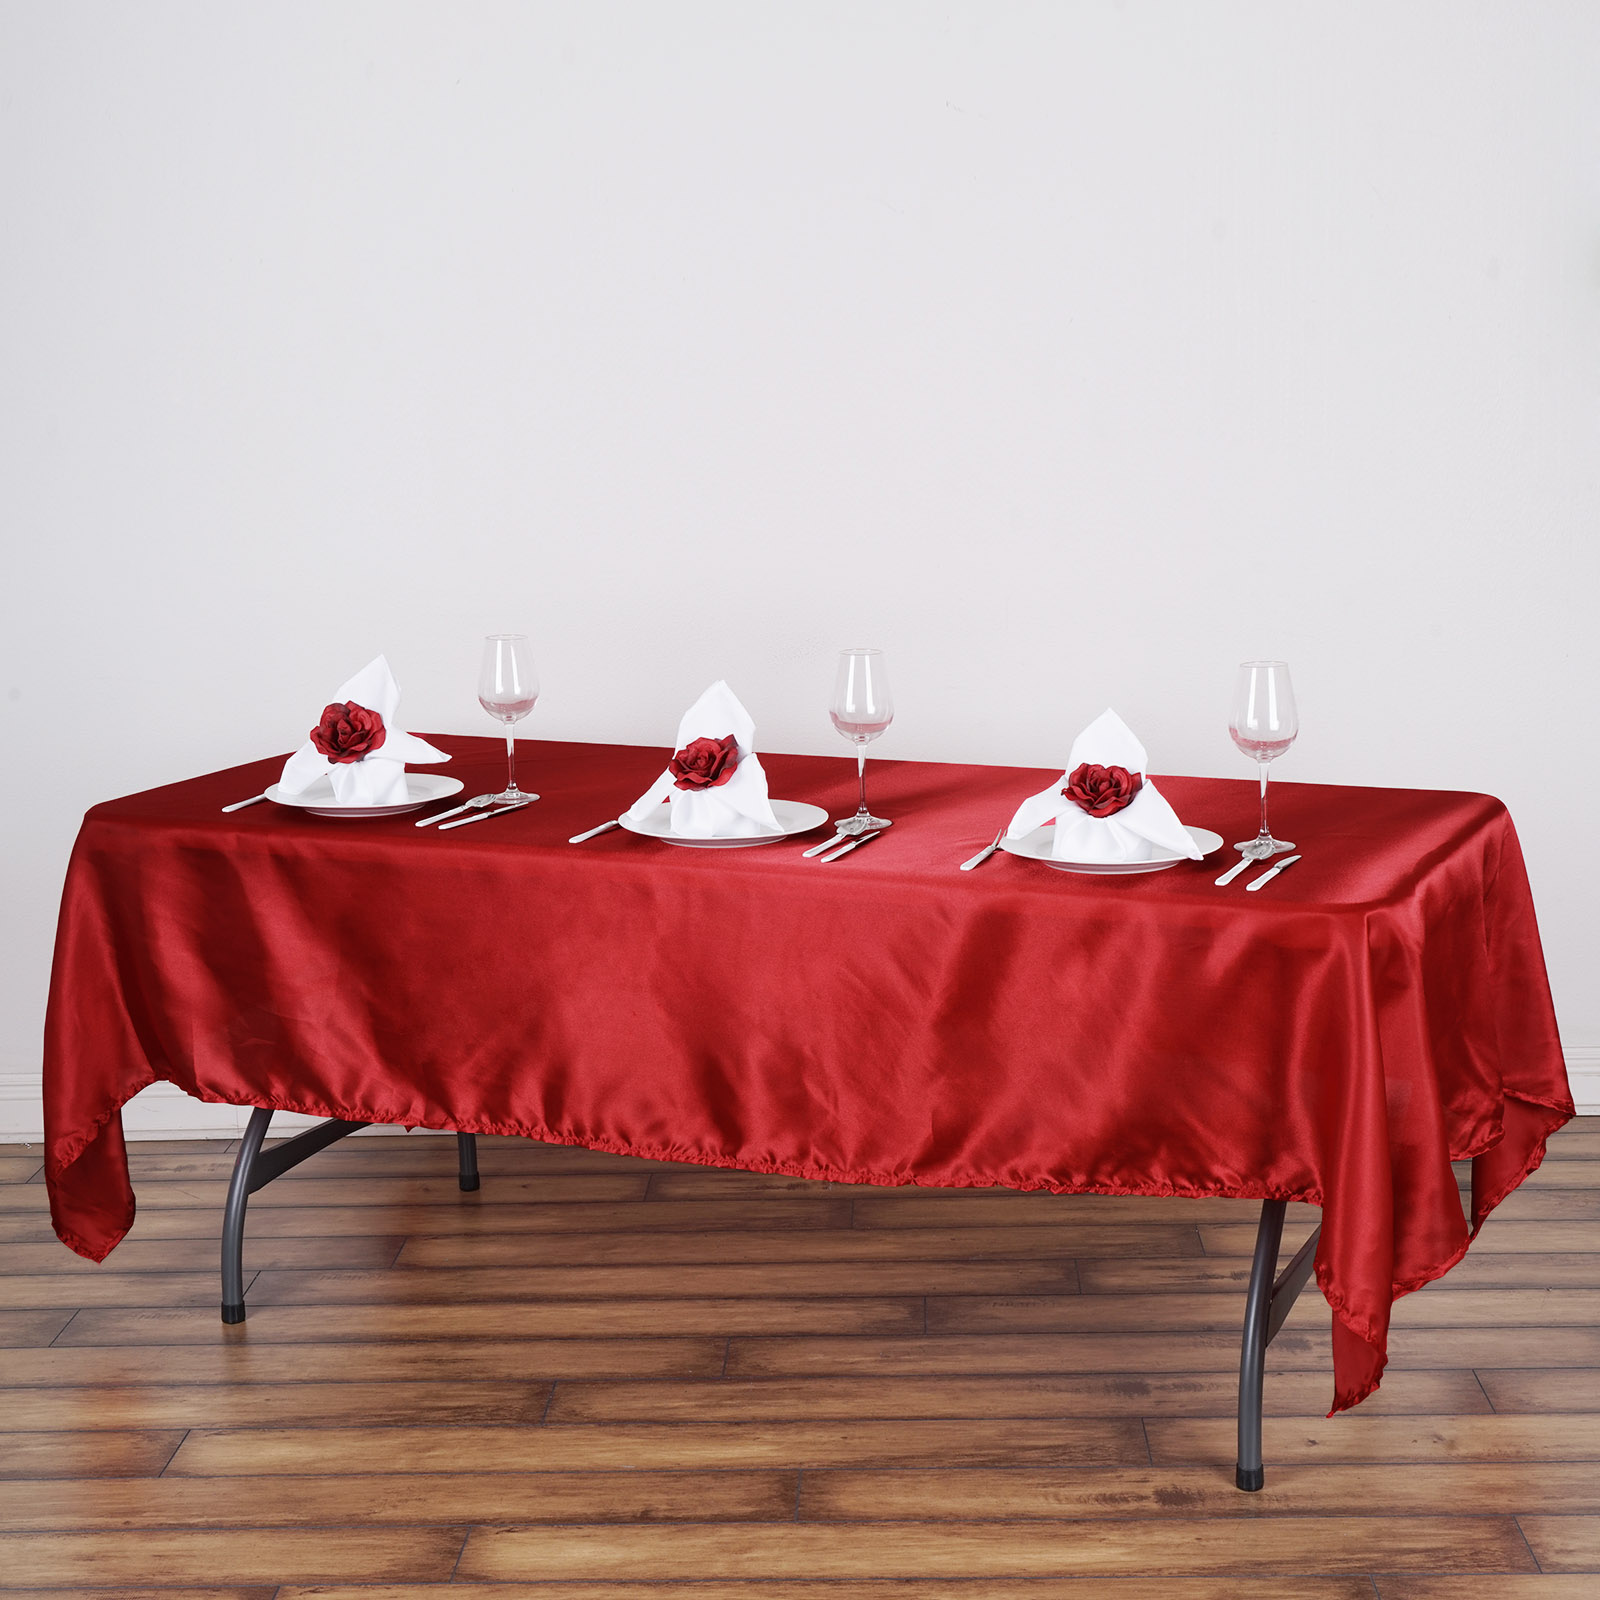 "60"" x 102"" Rectangular Satin Tablecloth Table Covers for Party Wedding Reception Catering Dining Home Table Linens"